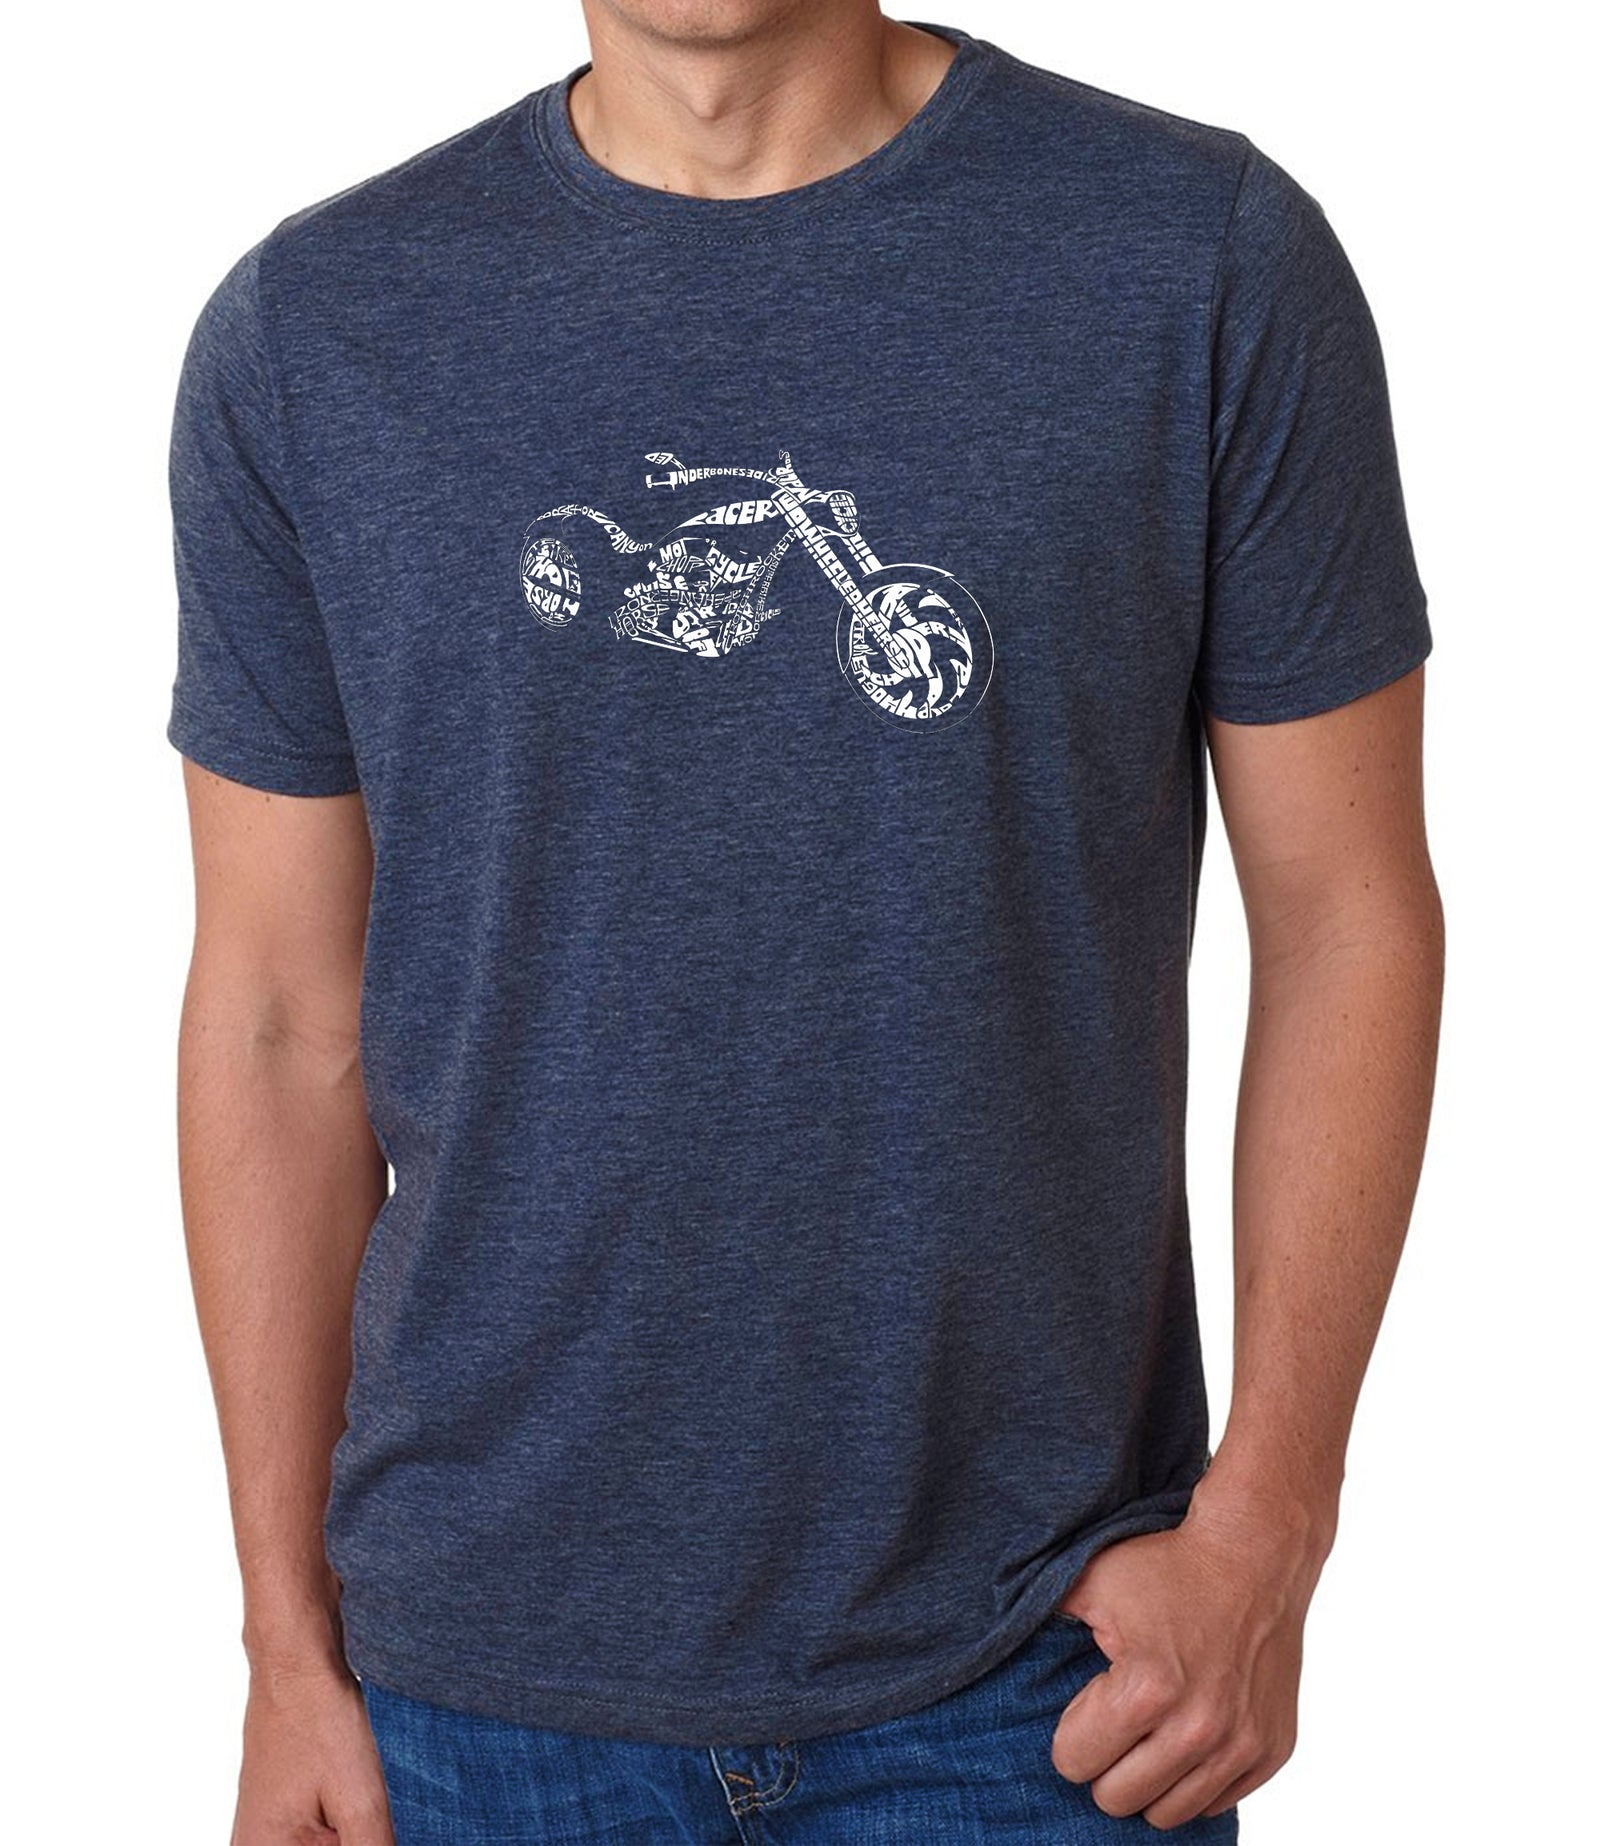 Men's Premium Blend Word Art T-shirt - MOTORCYCLE